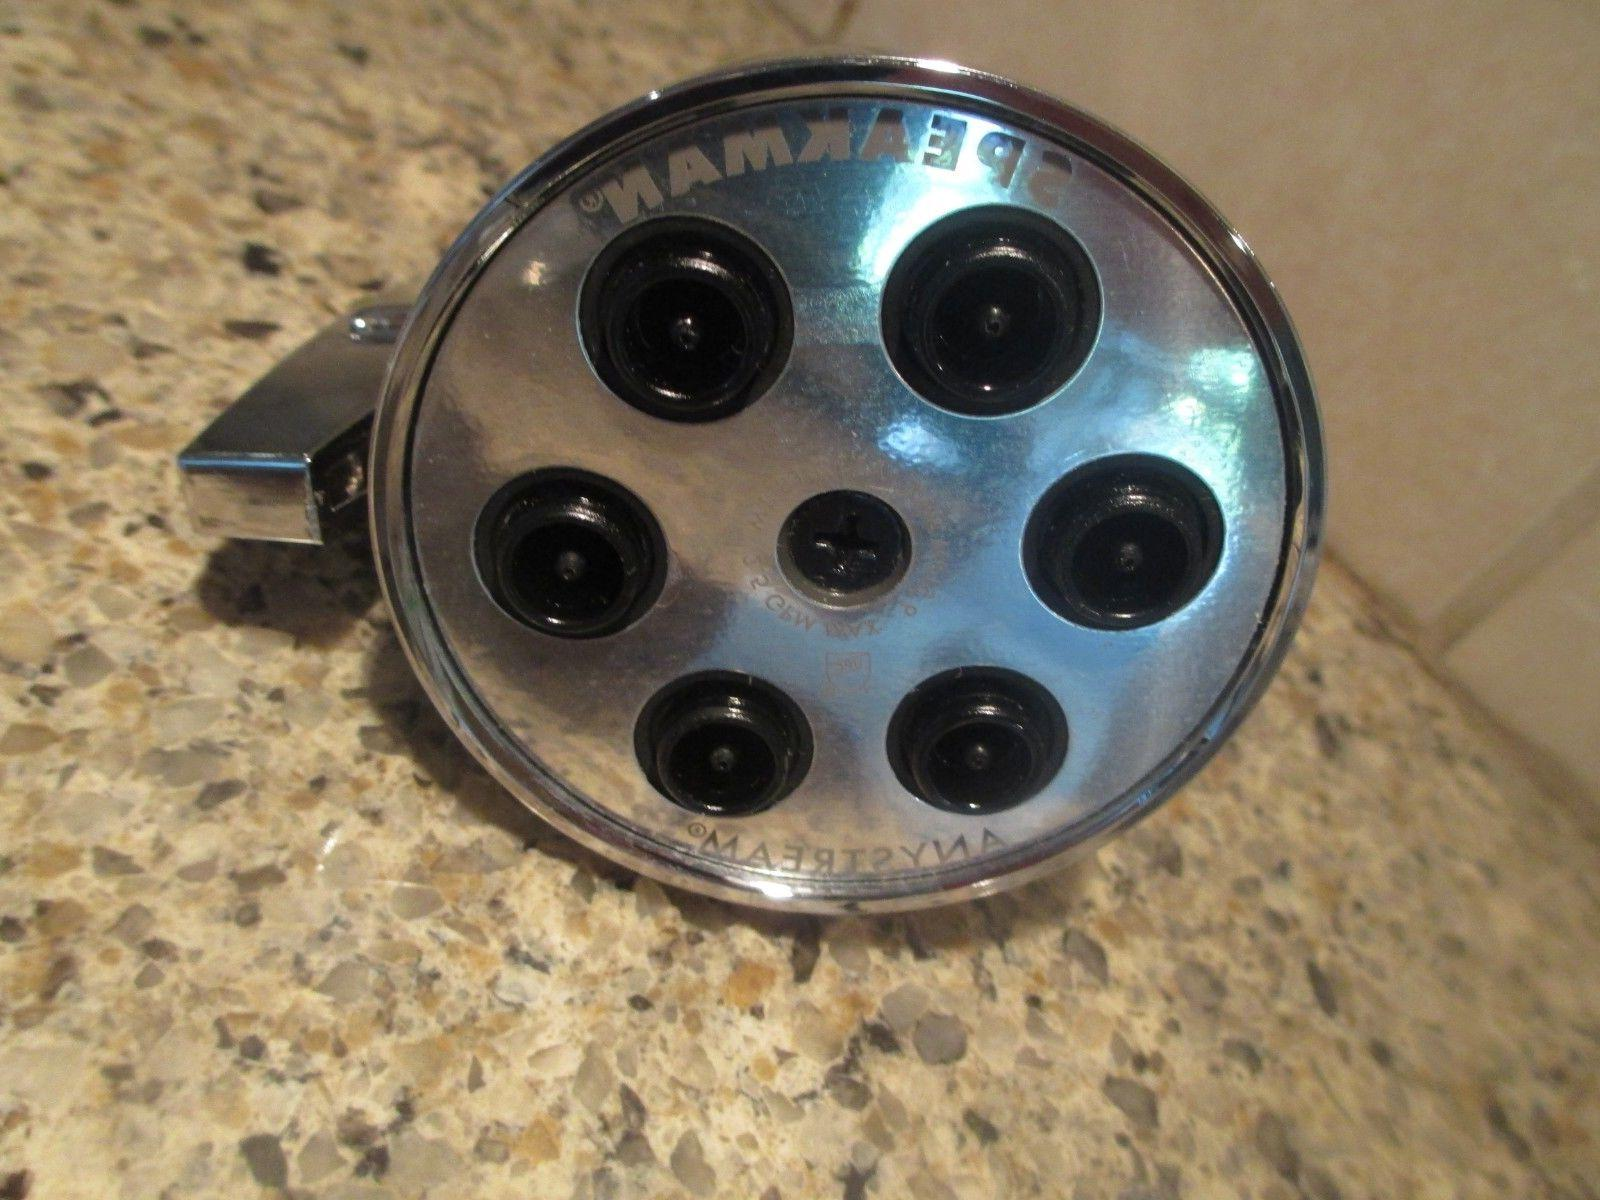 New, Speakman, GPM Showerhead